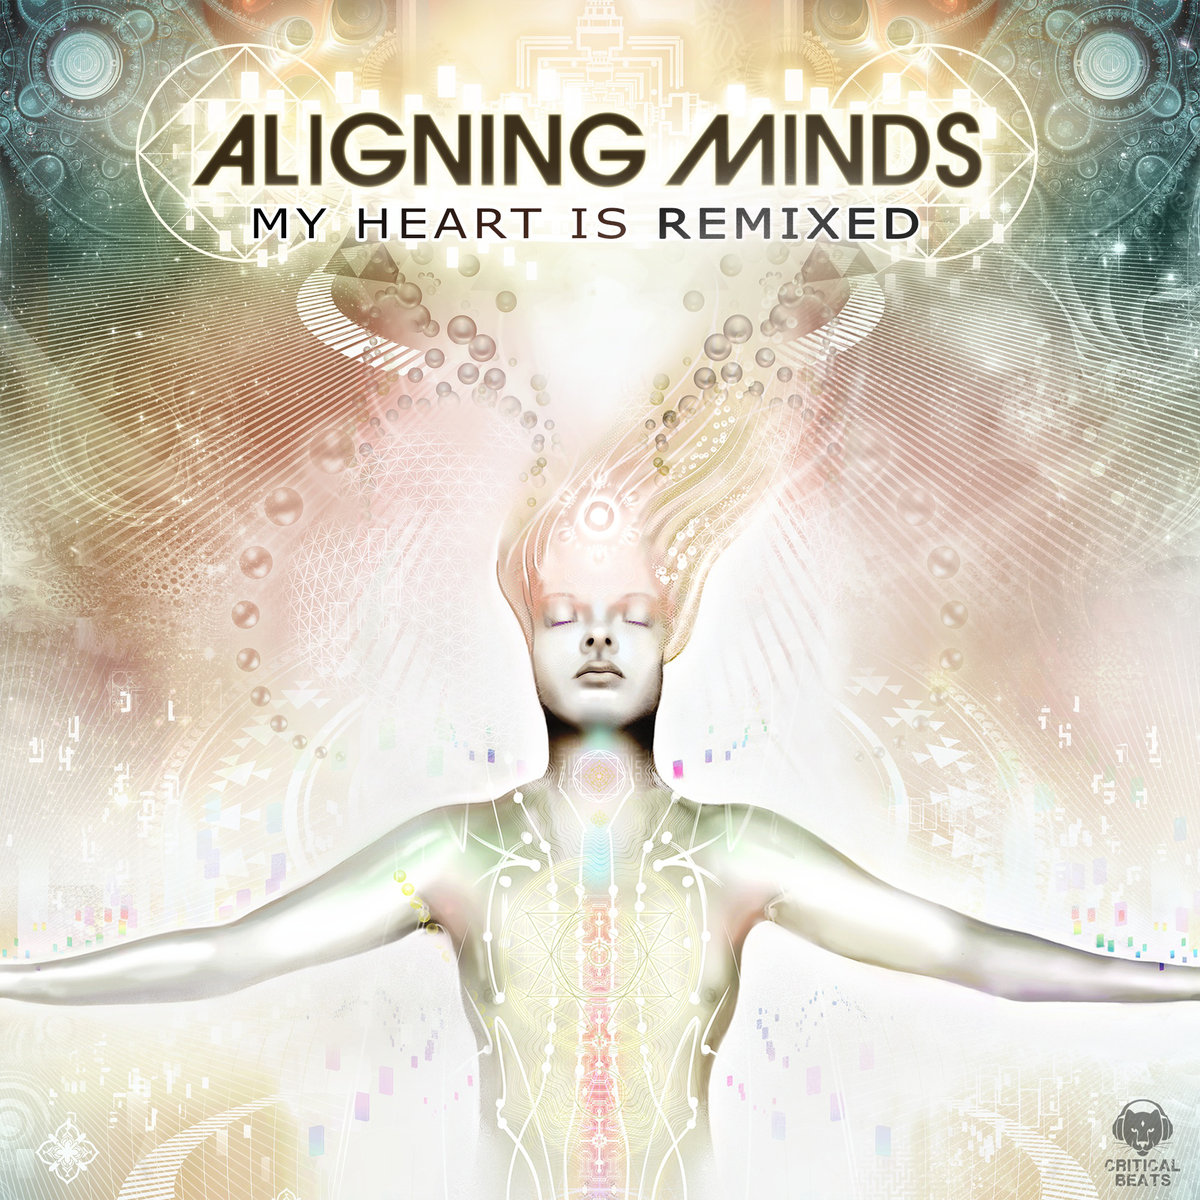 Aligning Minds - Folk Lore (Push/Pull Remix) @ 'My Heart Is Remixed' album (asheville, baltimore)